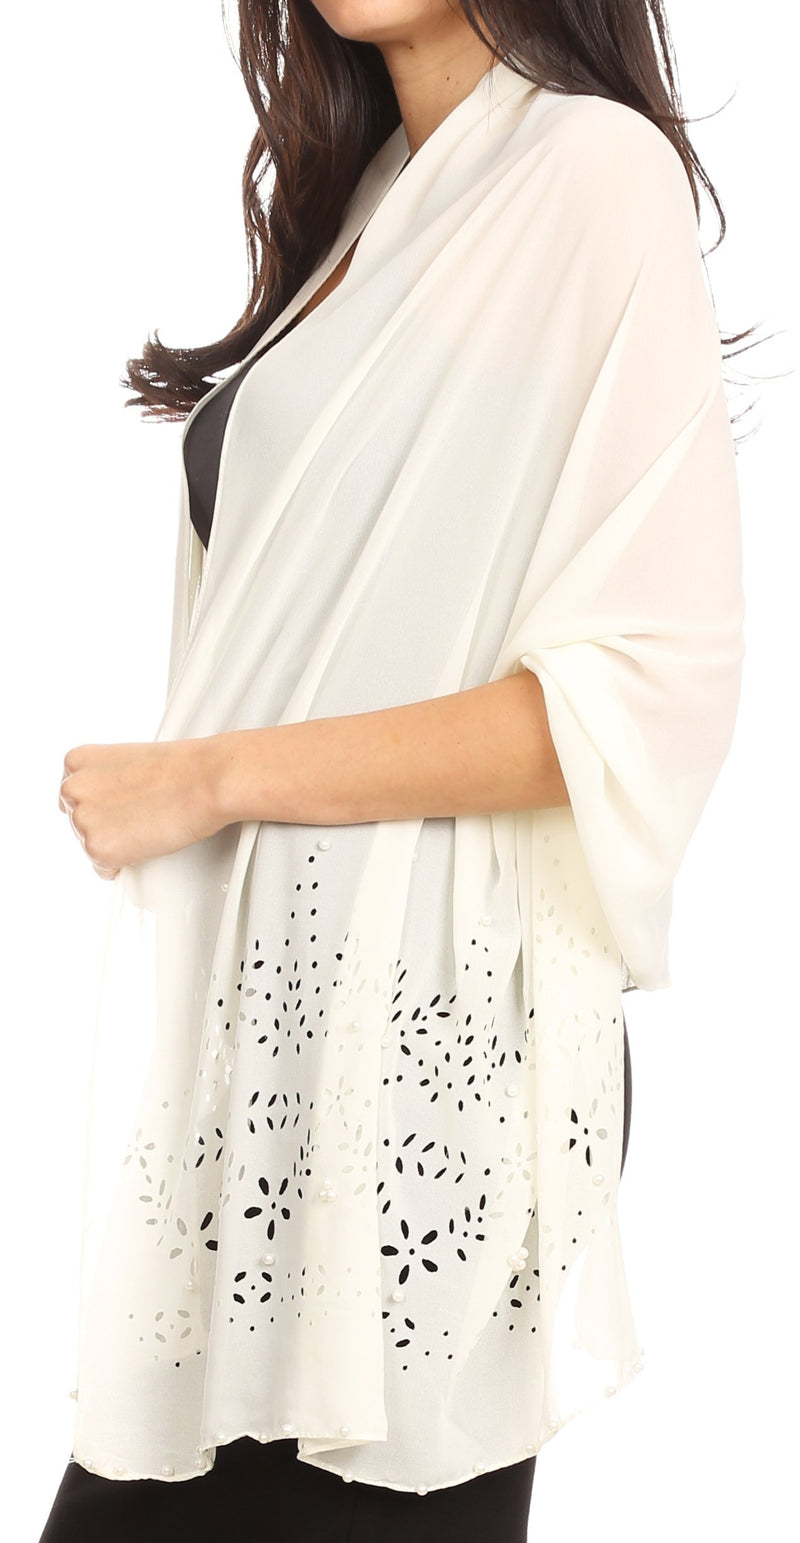 Sakkas Naomi Women Soft Sheer Embellished Chiffon Bridal Wedding Scarf Shawl Wrap